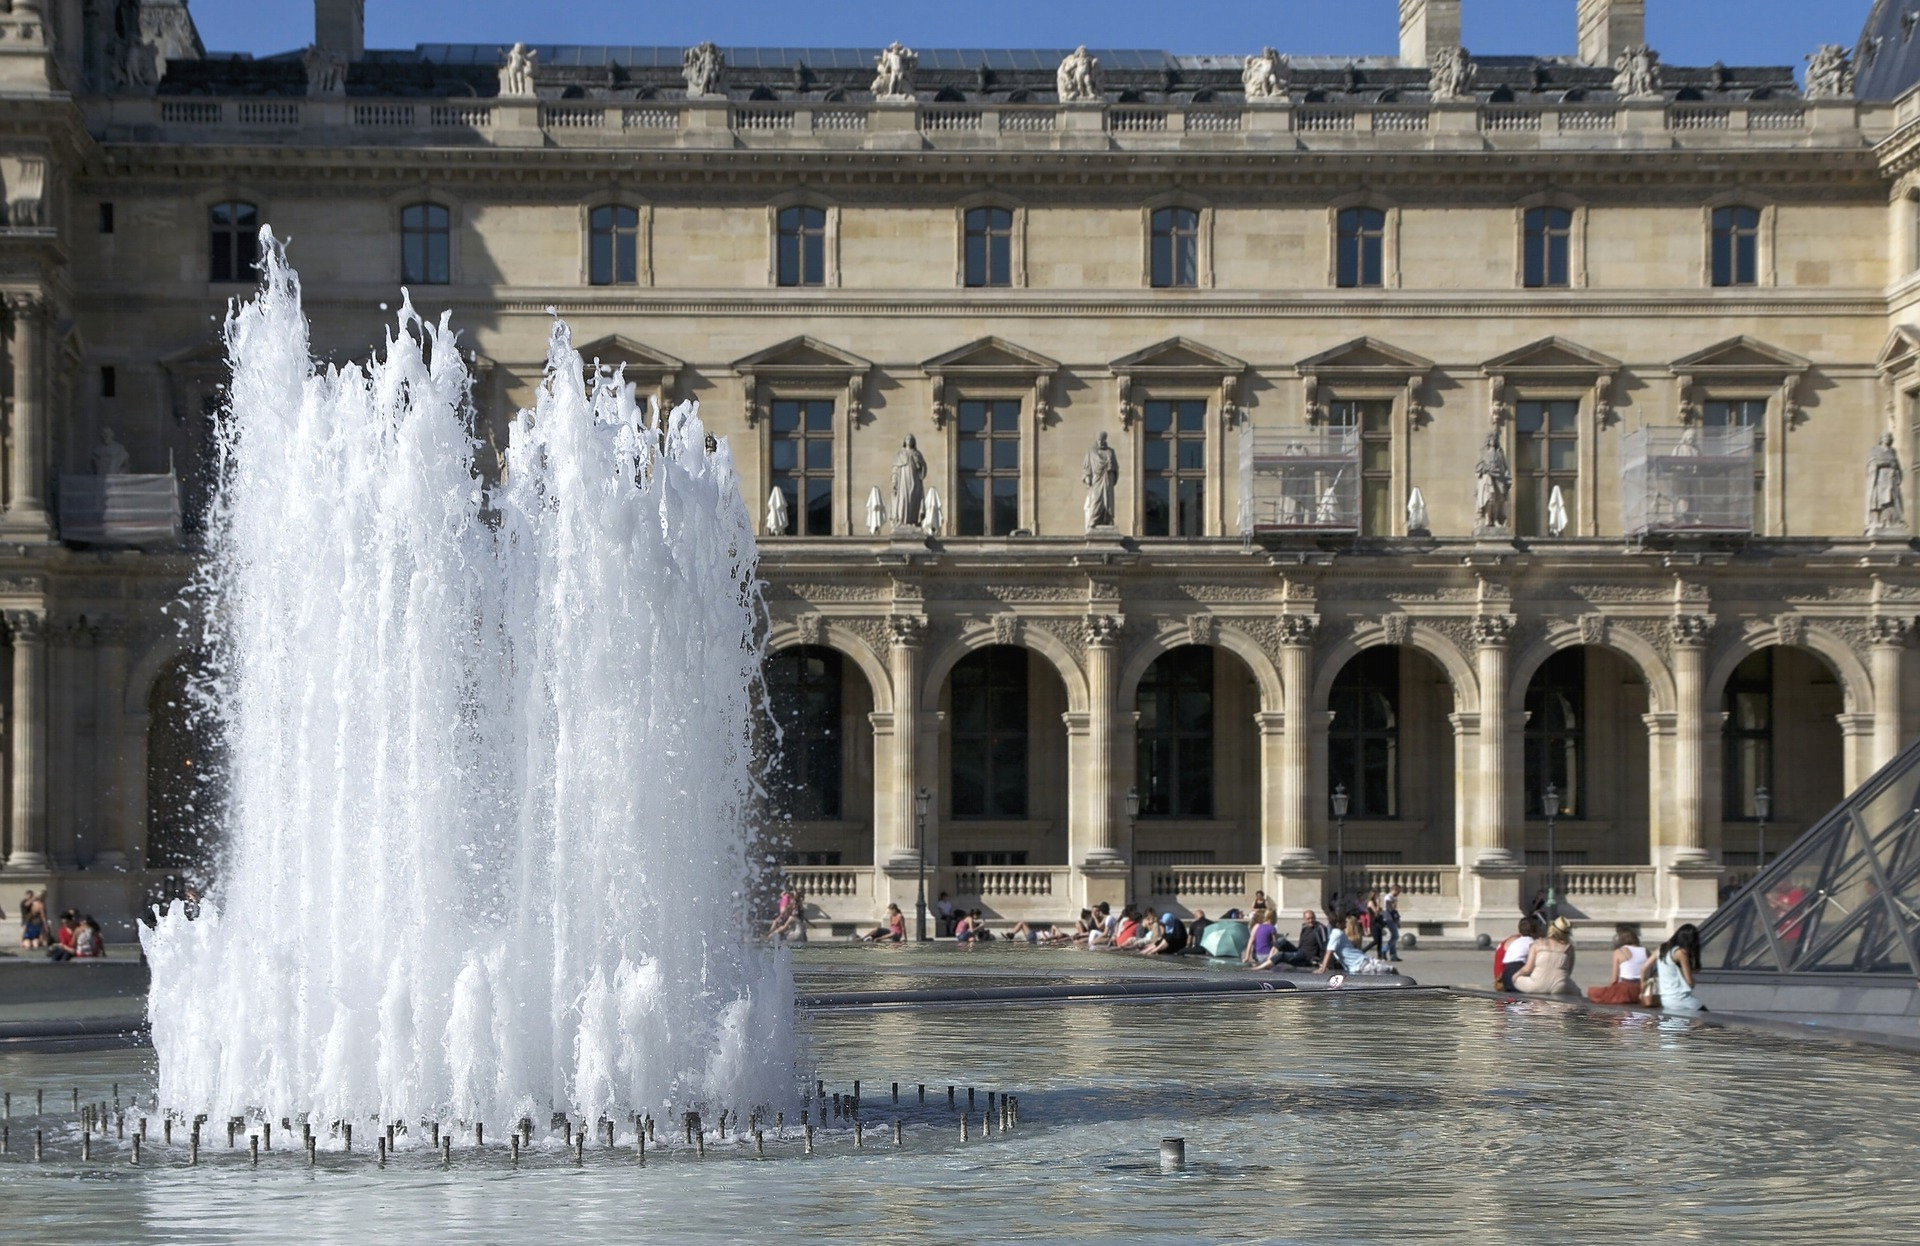 Fountains in the Louvre courtyard